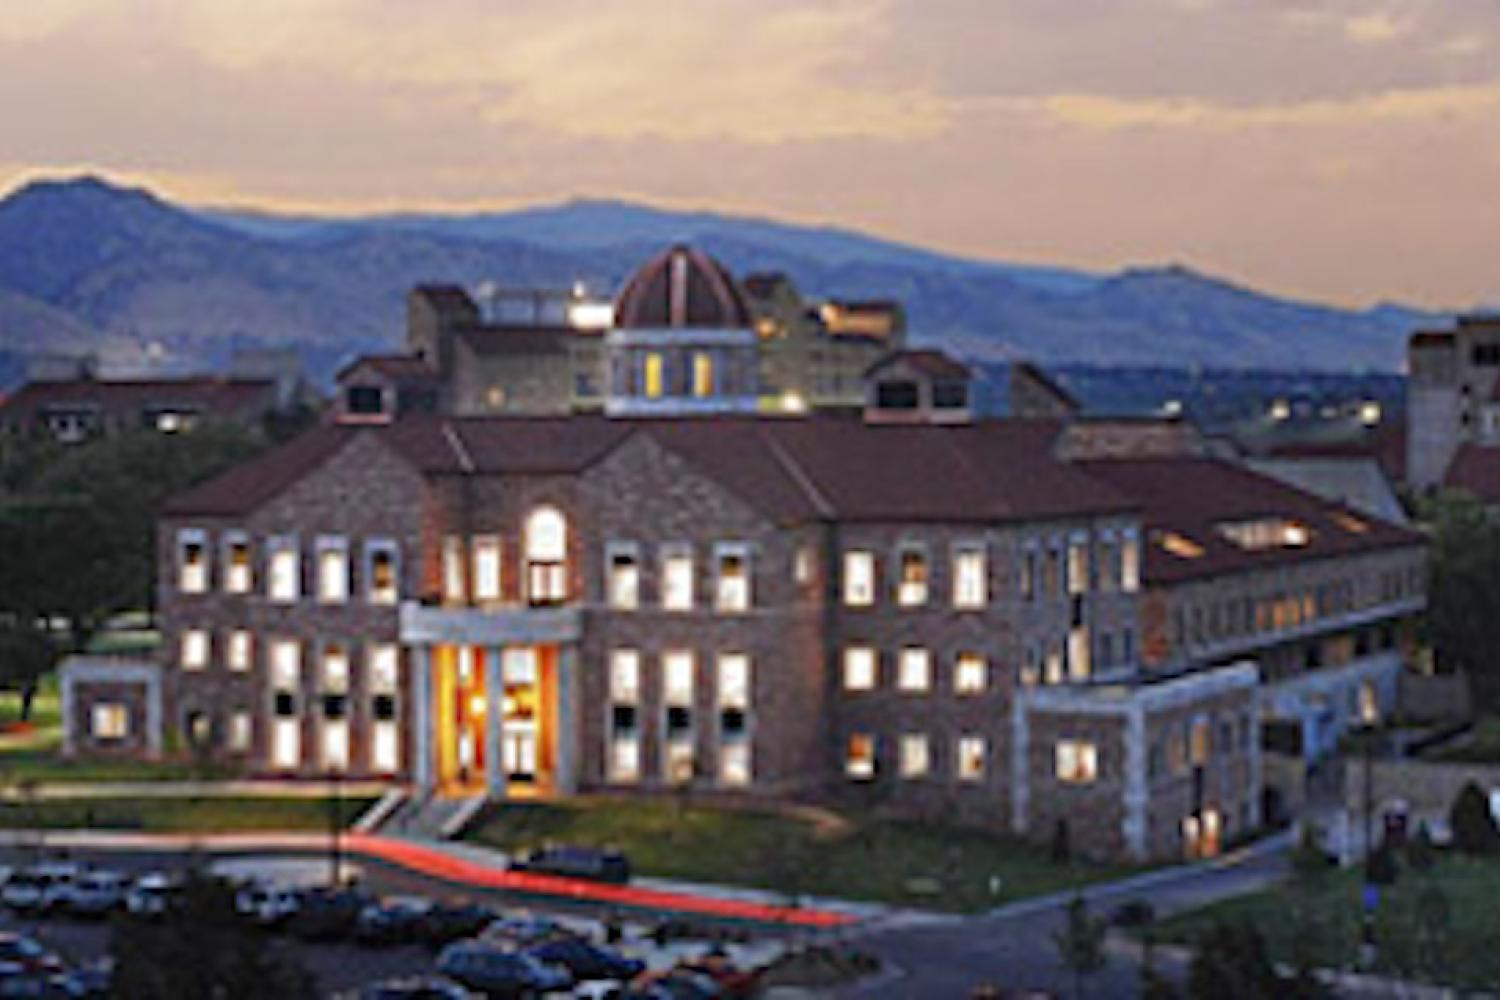 Campus building at dusk with lights on